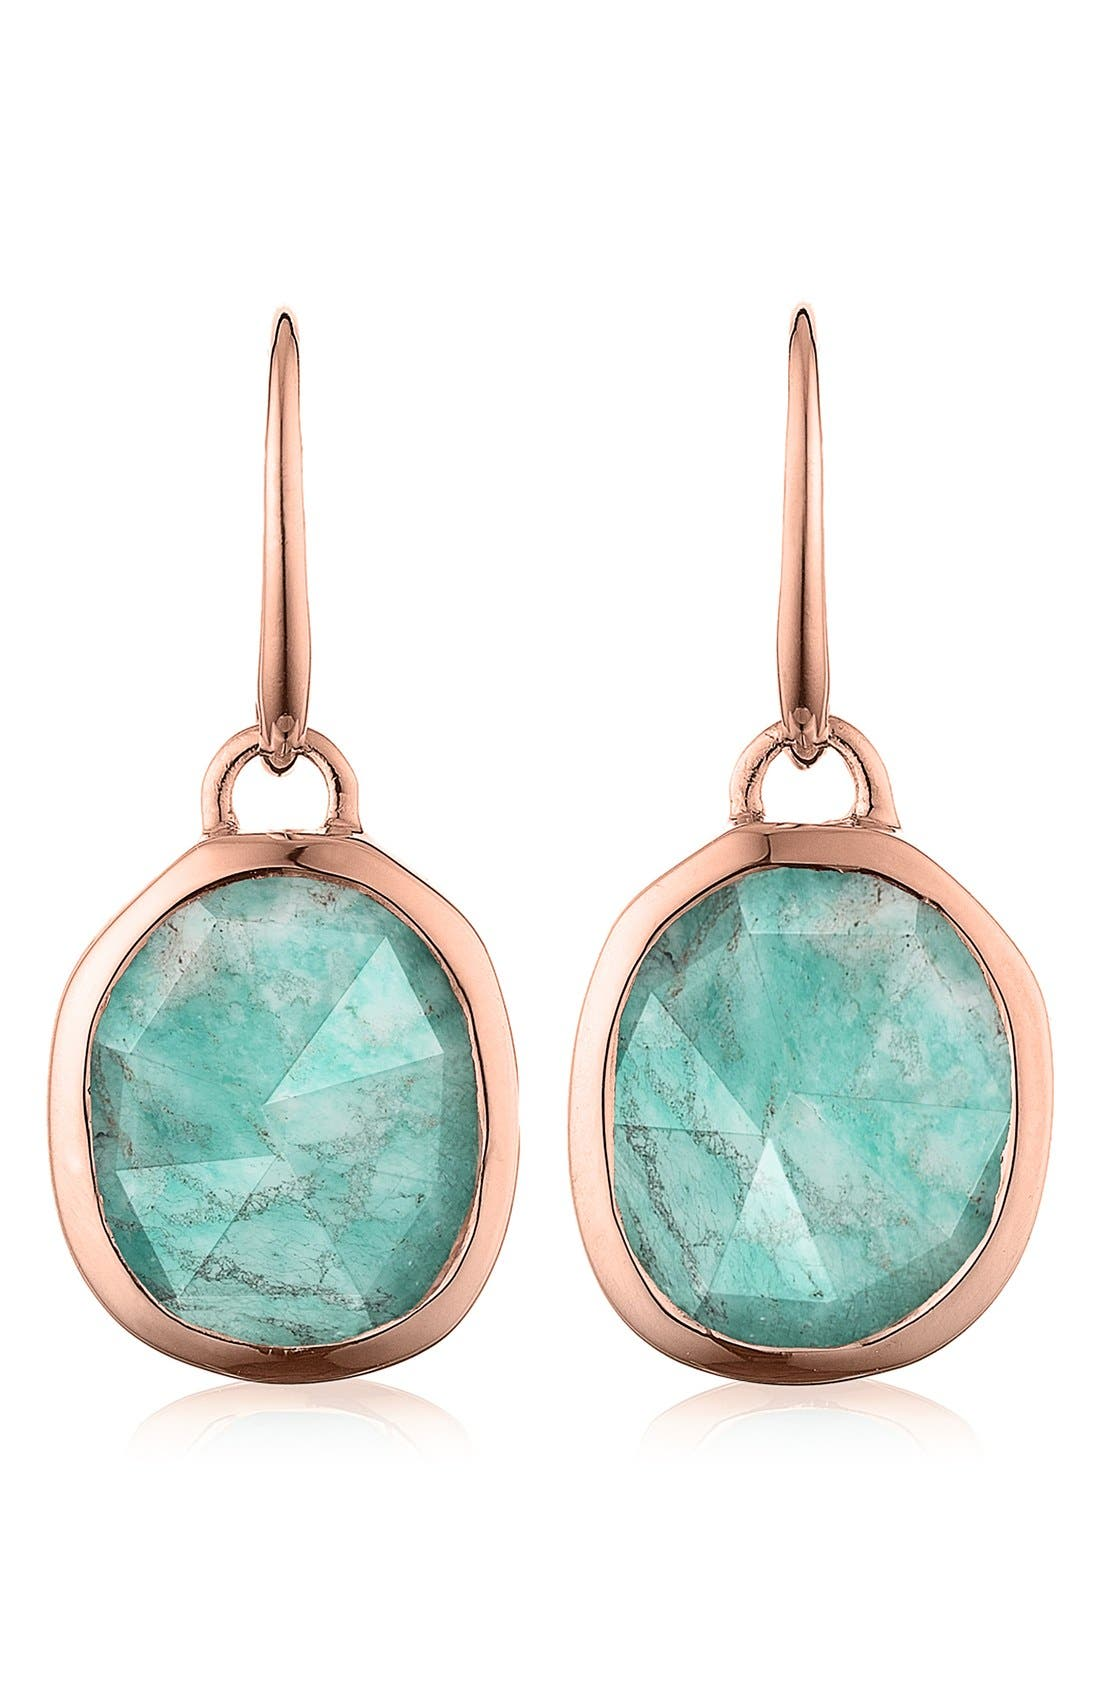 Siren Semiprecious Stone Drop Earrings,                         Main,                         color, AMAZONITE/ ROSE GOLD